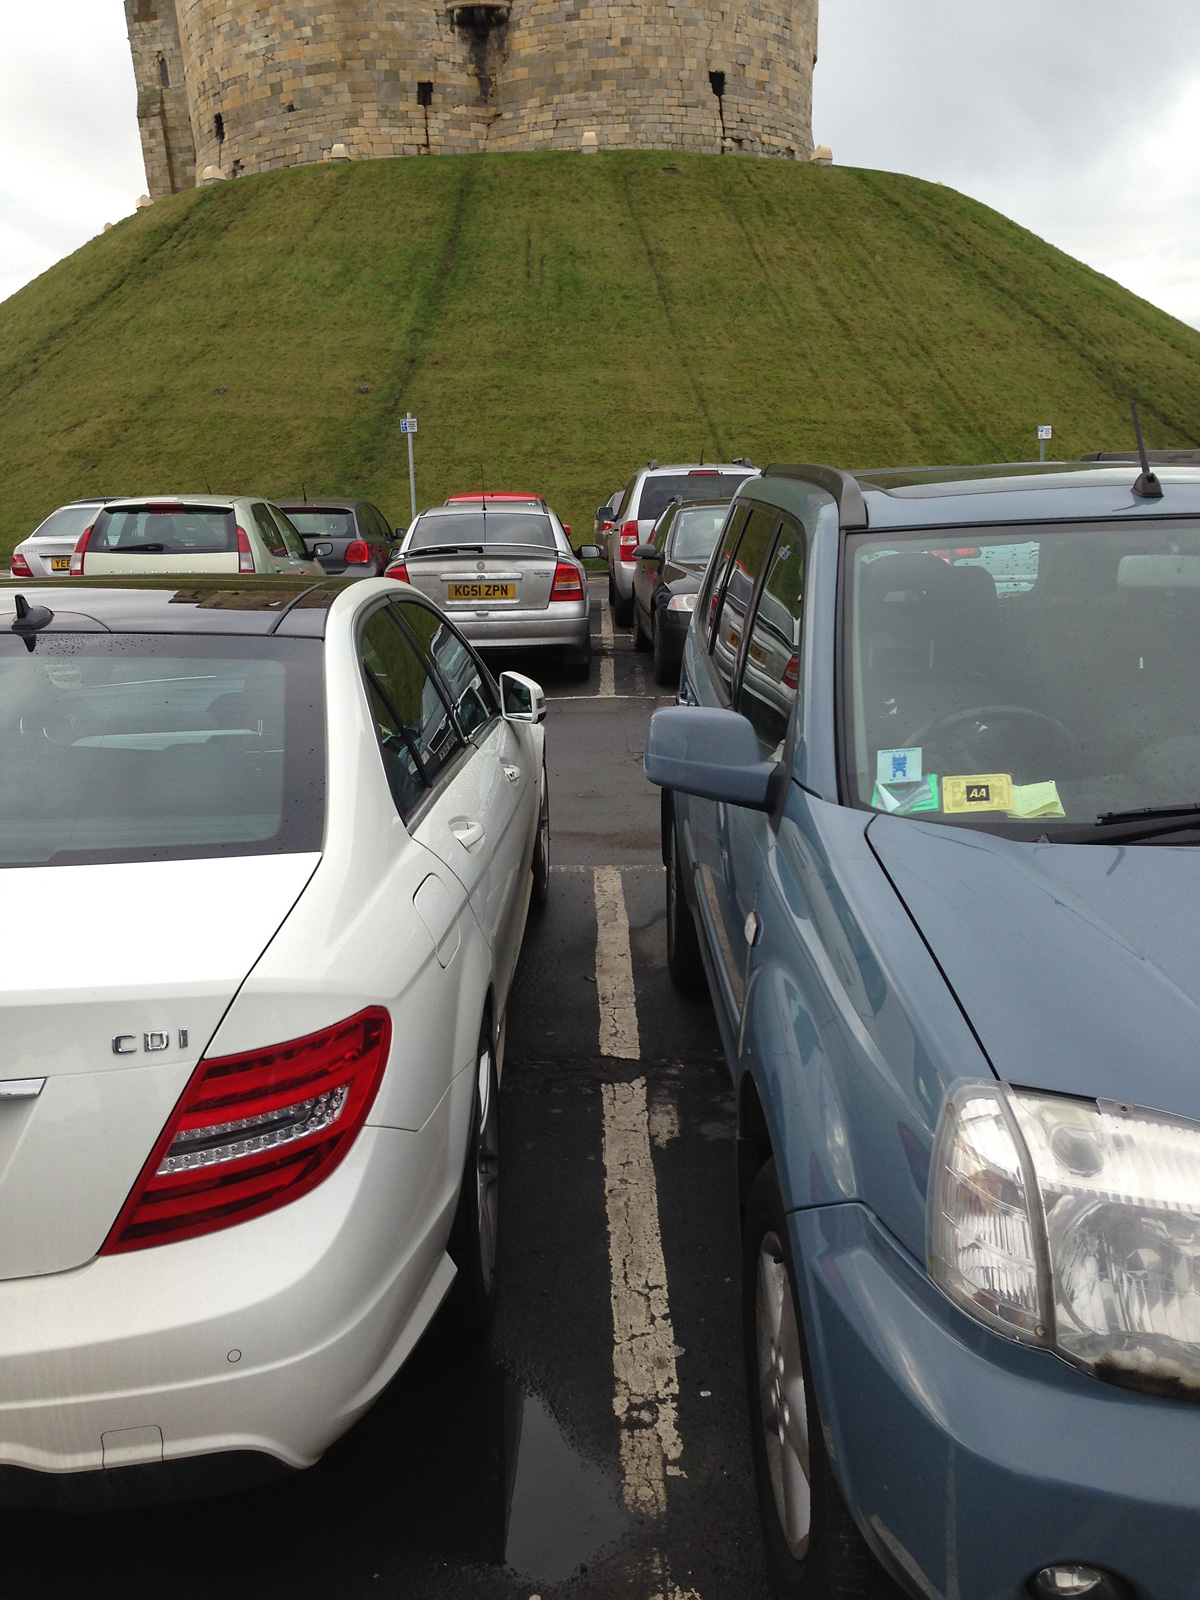 Letter writer Keith Massey submitted this photograph showing how tight the parking spaces are at Clifford's Tower